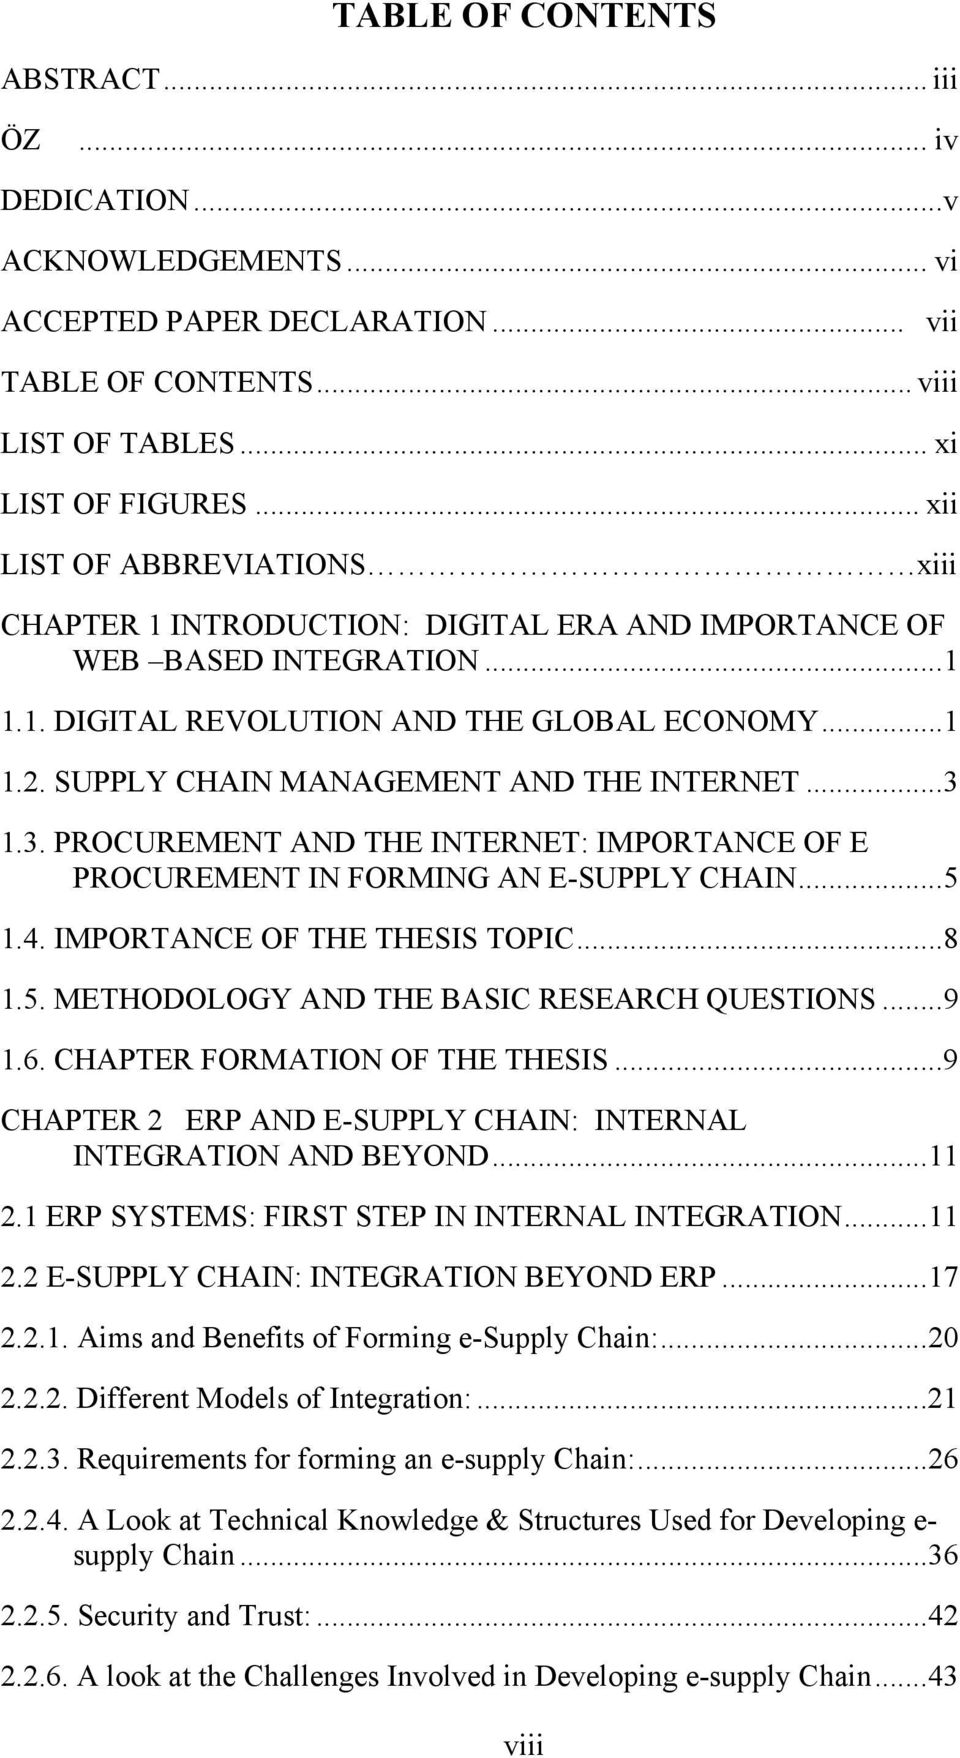 SUPPLY CHAIN MANAGEMENT AND THE INTERNET... 3 1.3. PROCUREMENT AND THE INTERNET: IMPORTANCE OF E PROCUREMENT IN FORMING AN E-SUPPLY CHAIN... 5 1.4. IMPORTANCE OF THE THESIS TOPIC... 8 1.5. METHODOLOGY AND THE BASIC RESEARCH QUESTIONS.